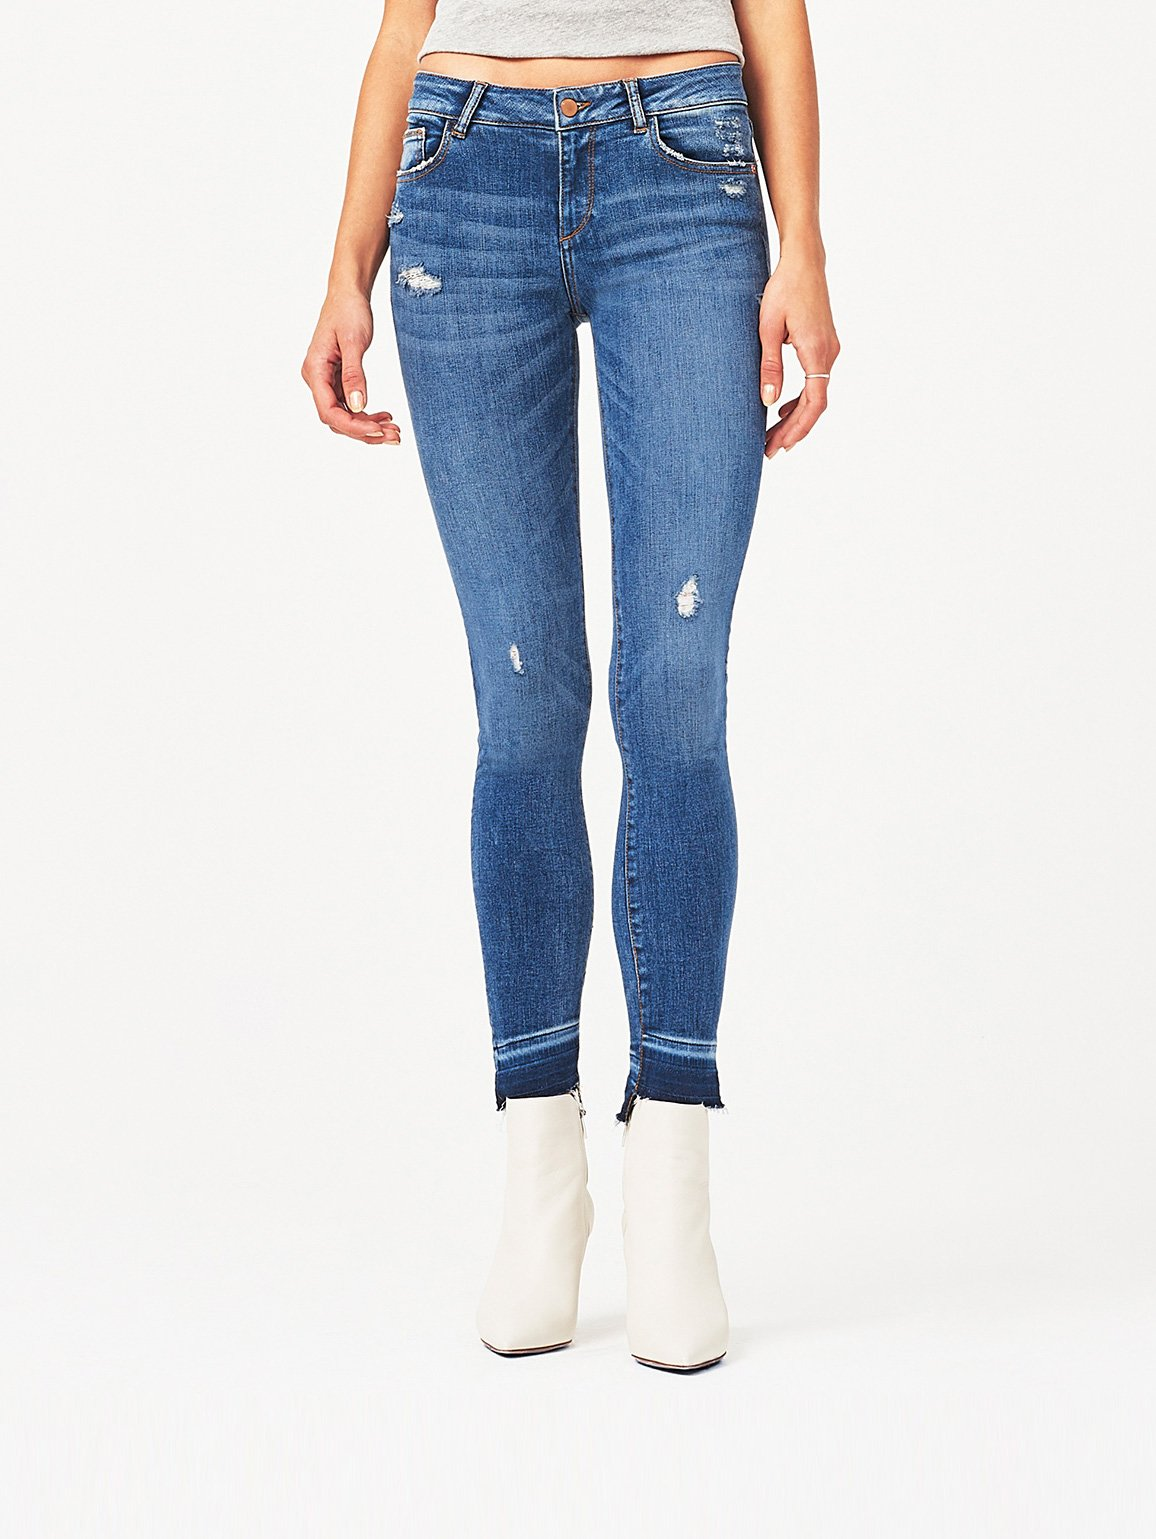 Image of Florence Mid Rise Skinny / Rosewood